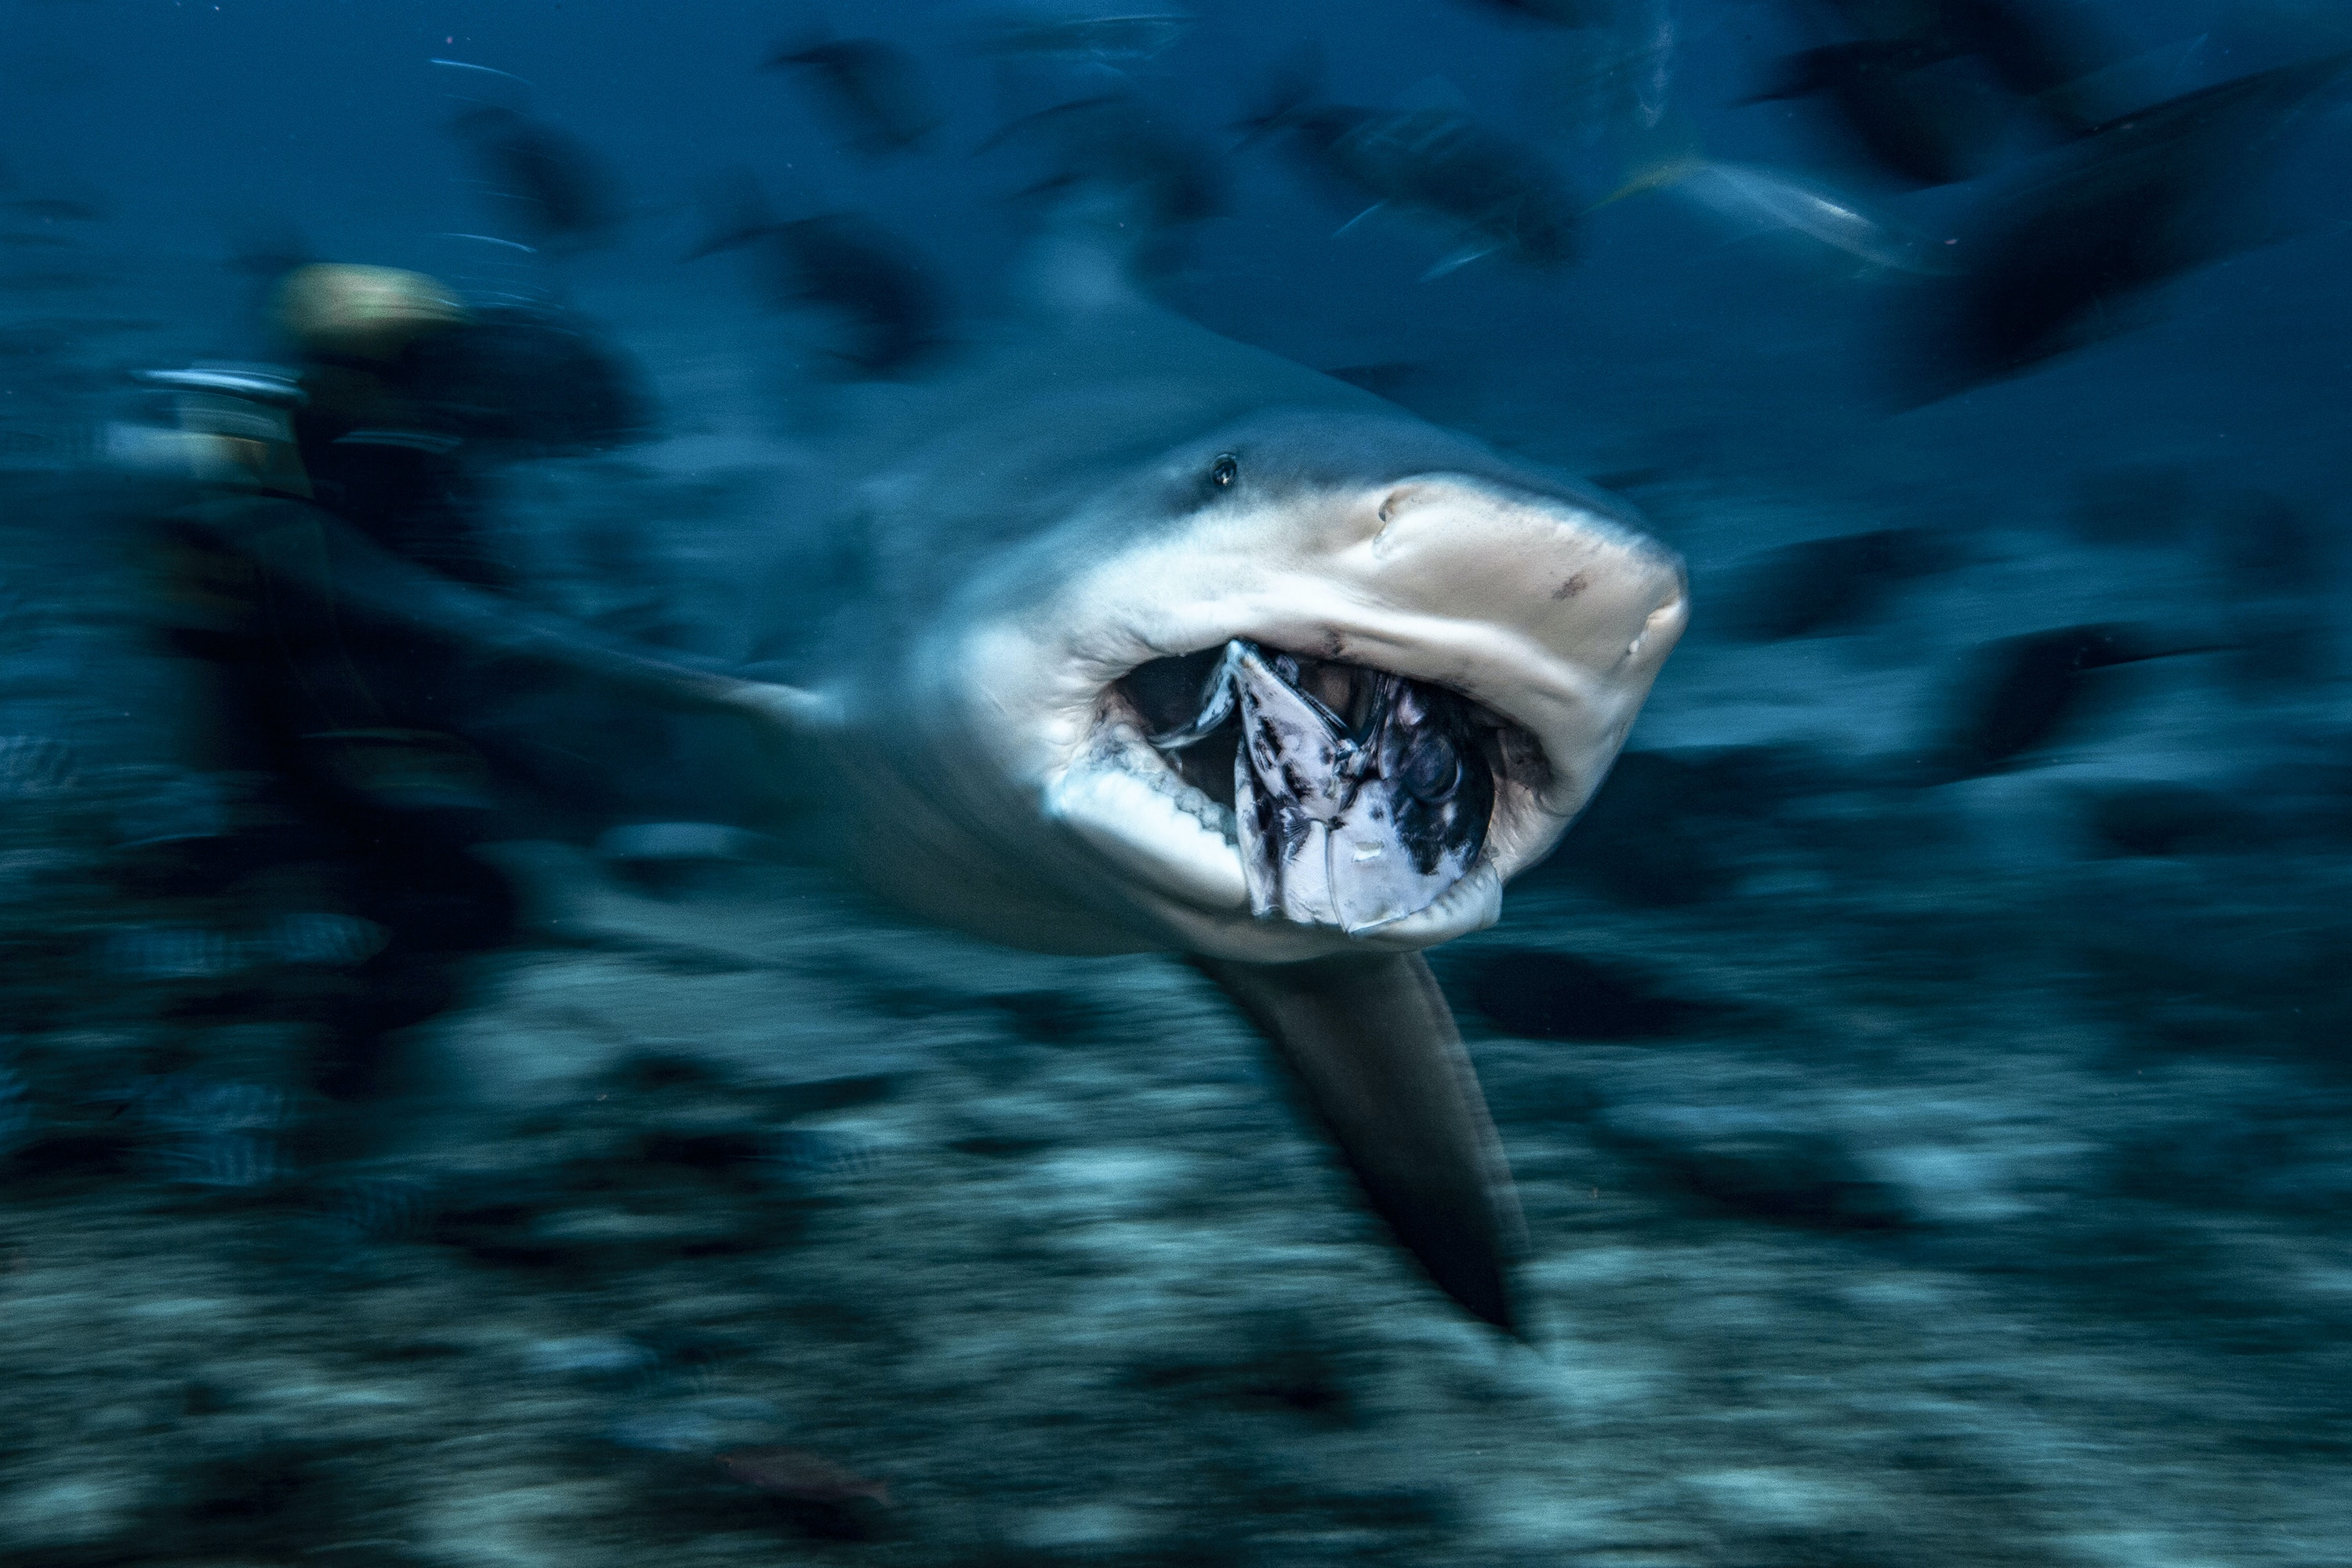 Dive with bull sharks in the diverse ecosystem of Shark Reef Marine Reserve in Fiji.